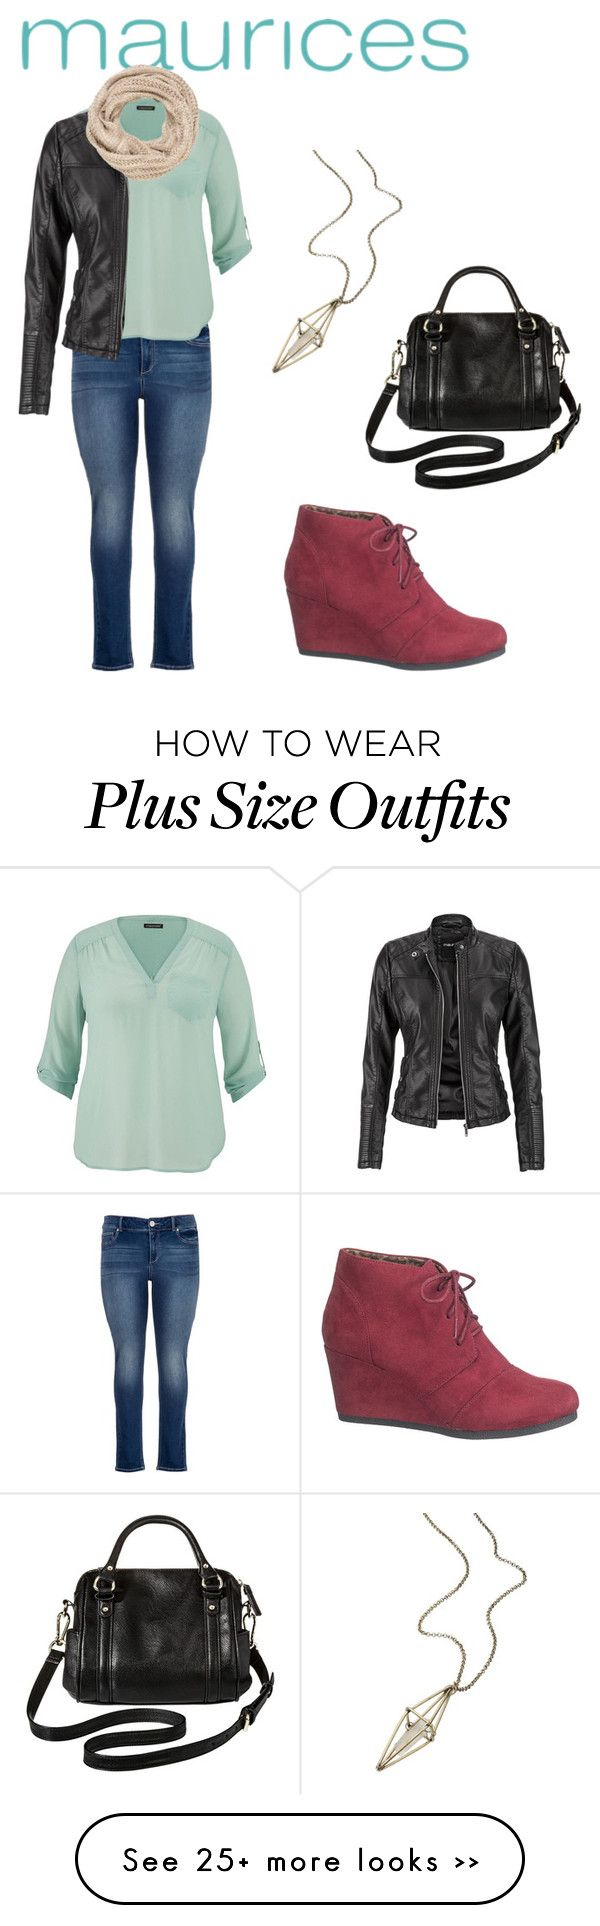 """The Perfect Blouse with maurices: Contest Entry"" by erama on Polyvore featuring maurices and Merona"